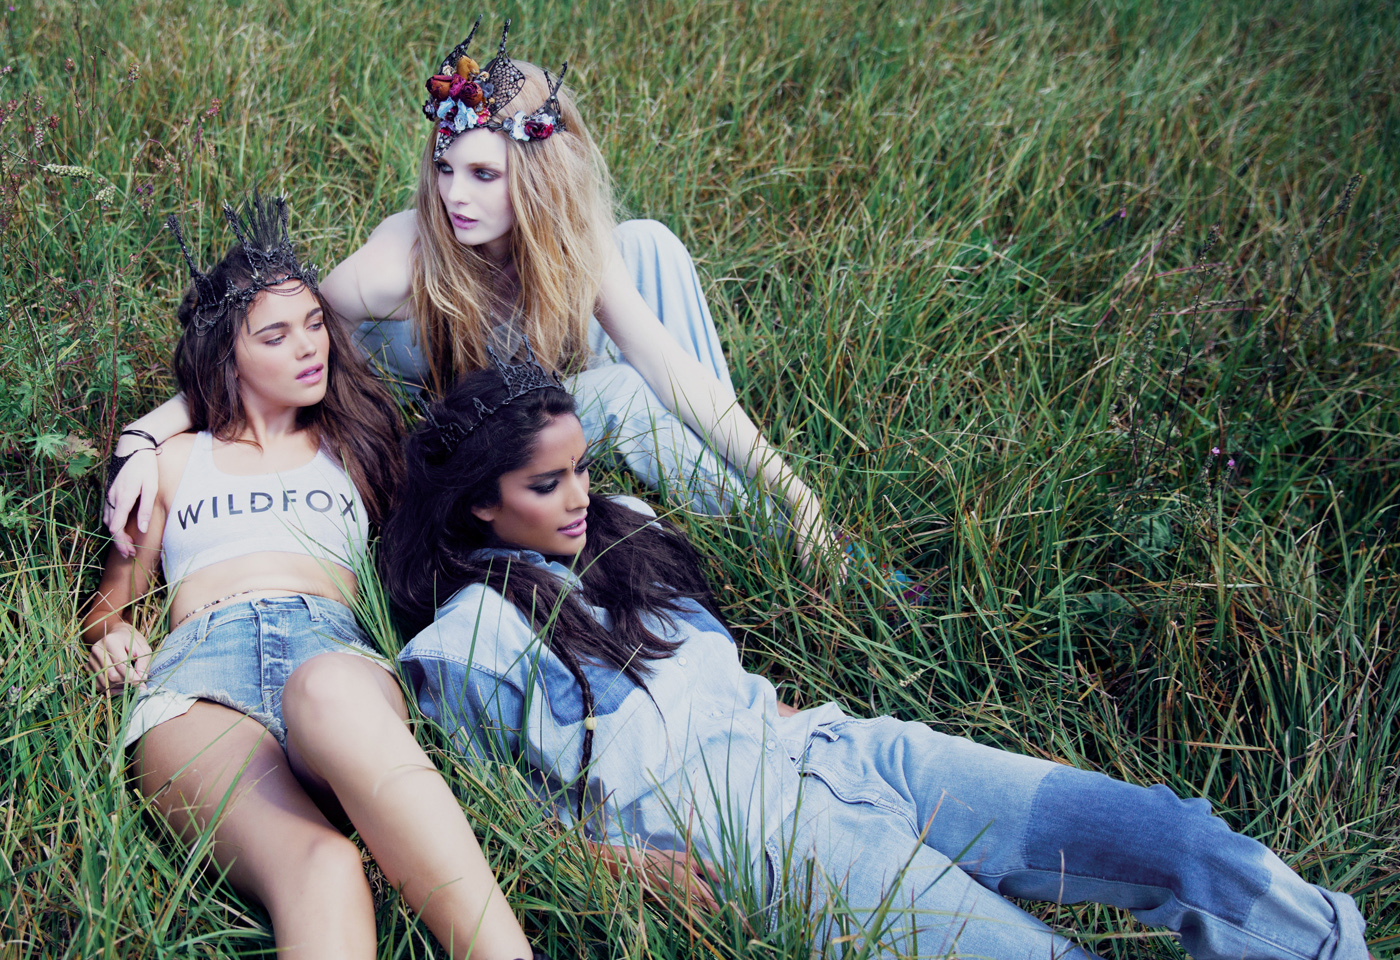 wildfox-spring-2015-ad-campaign-the-impression-12